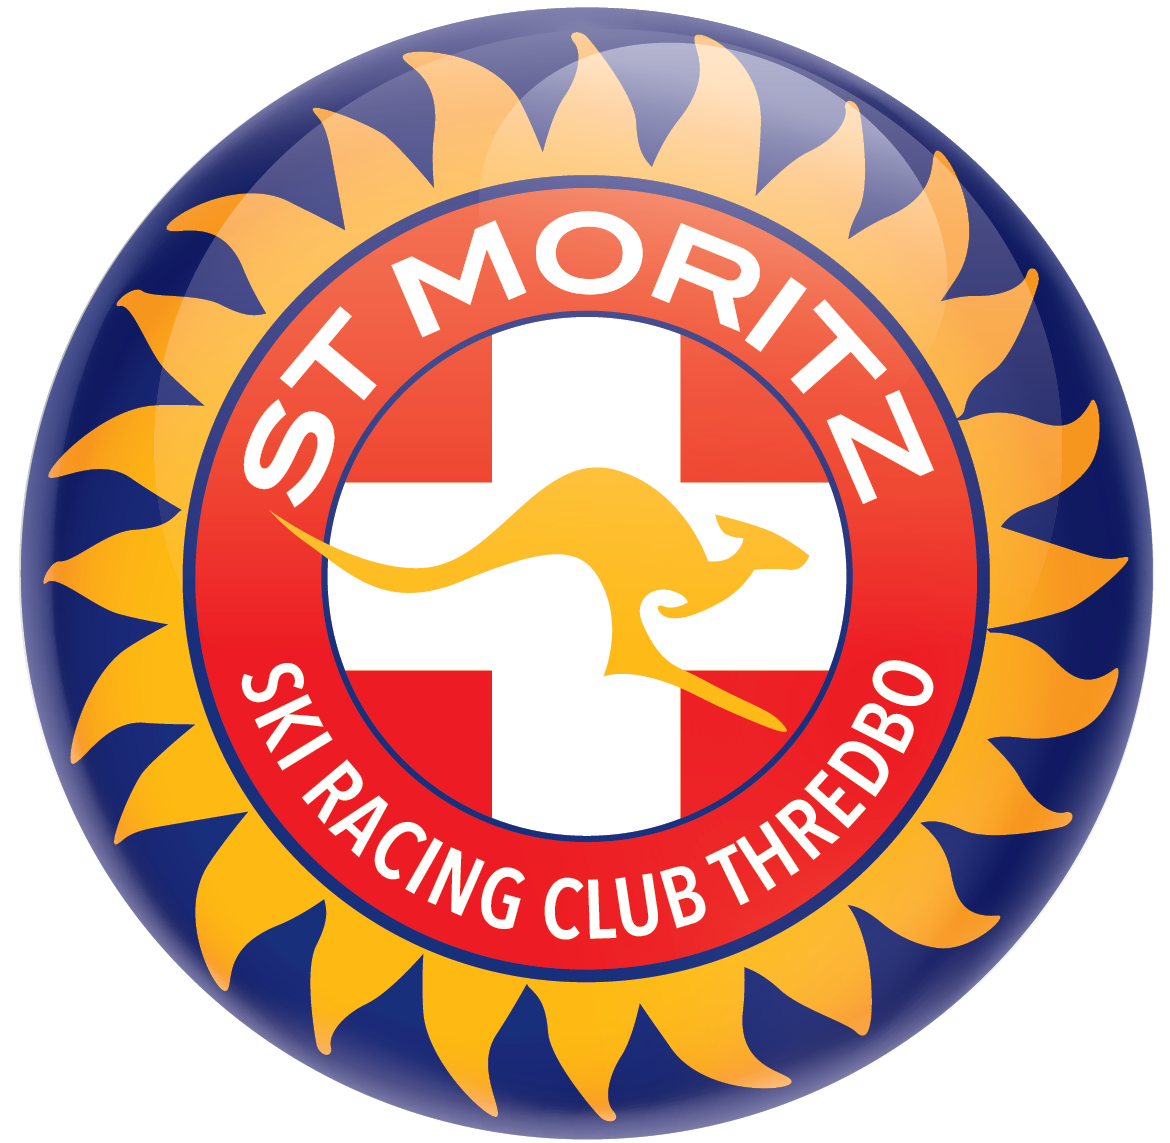 St Moritz Ski Racing Club Thredbo